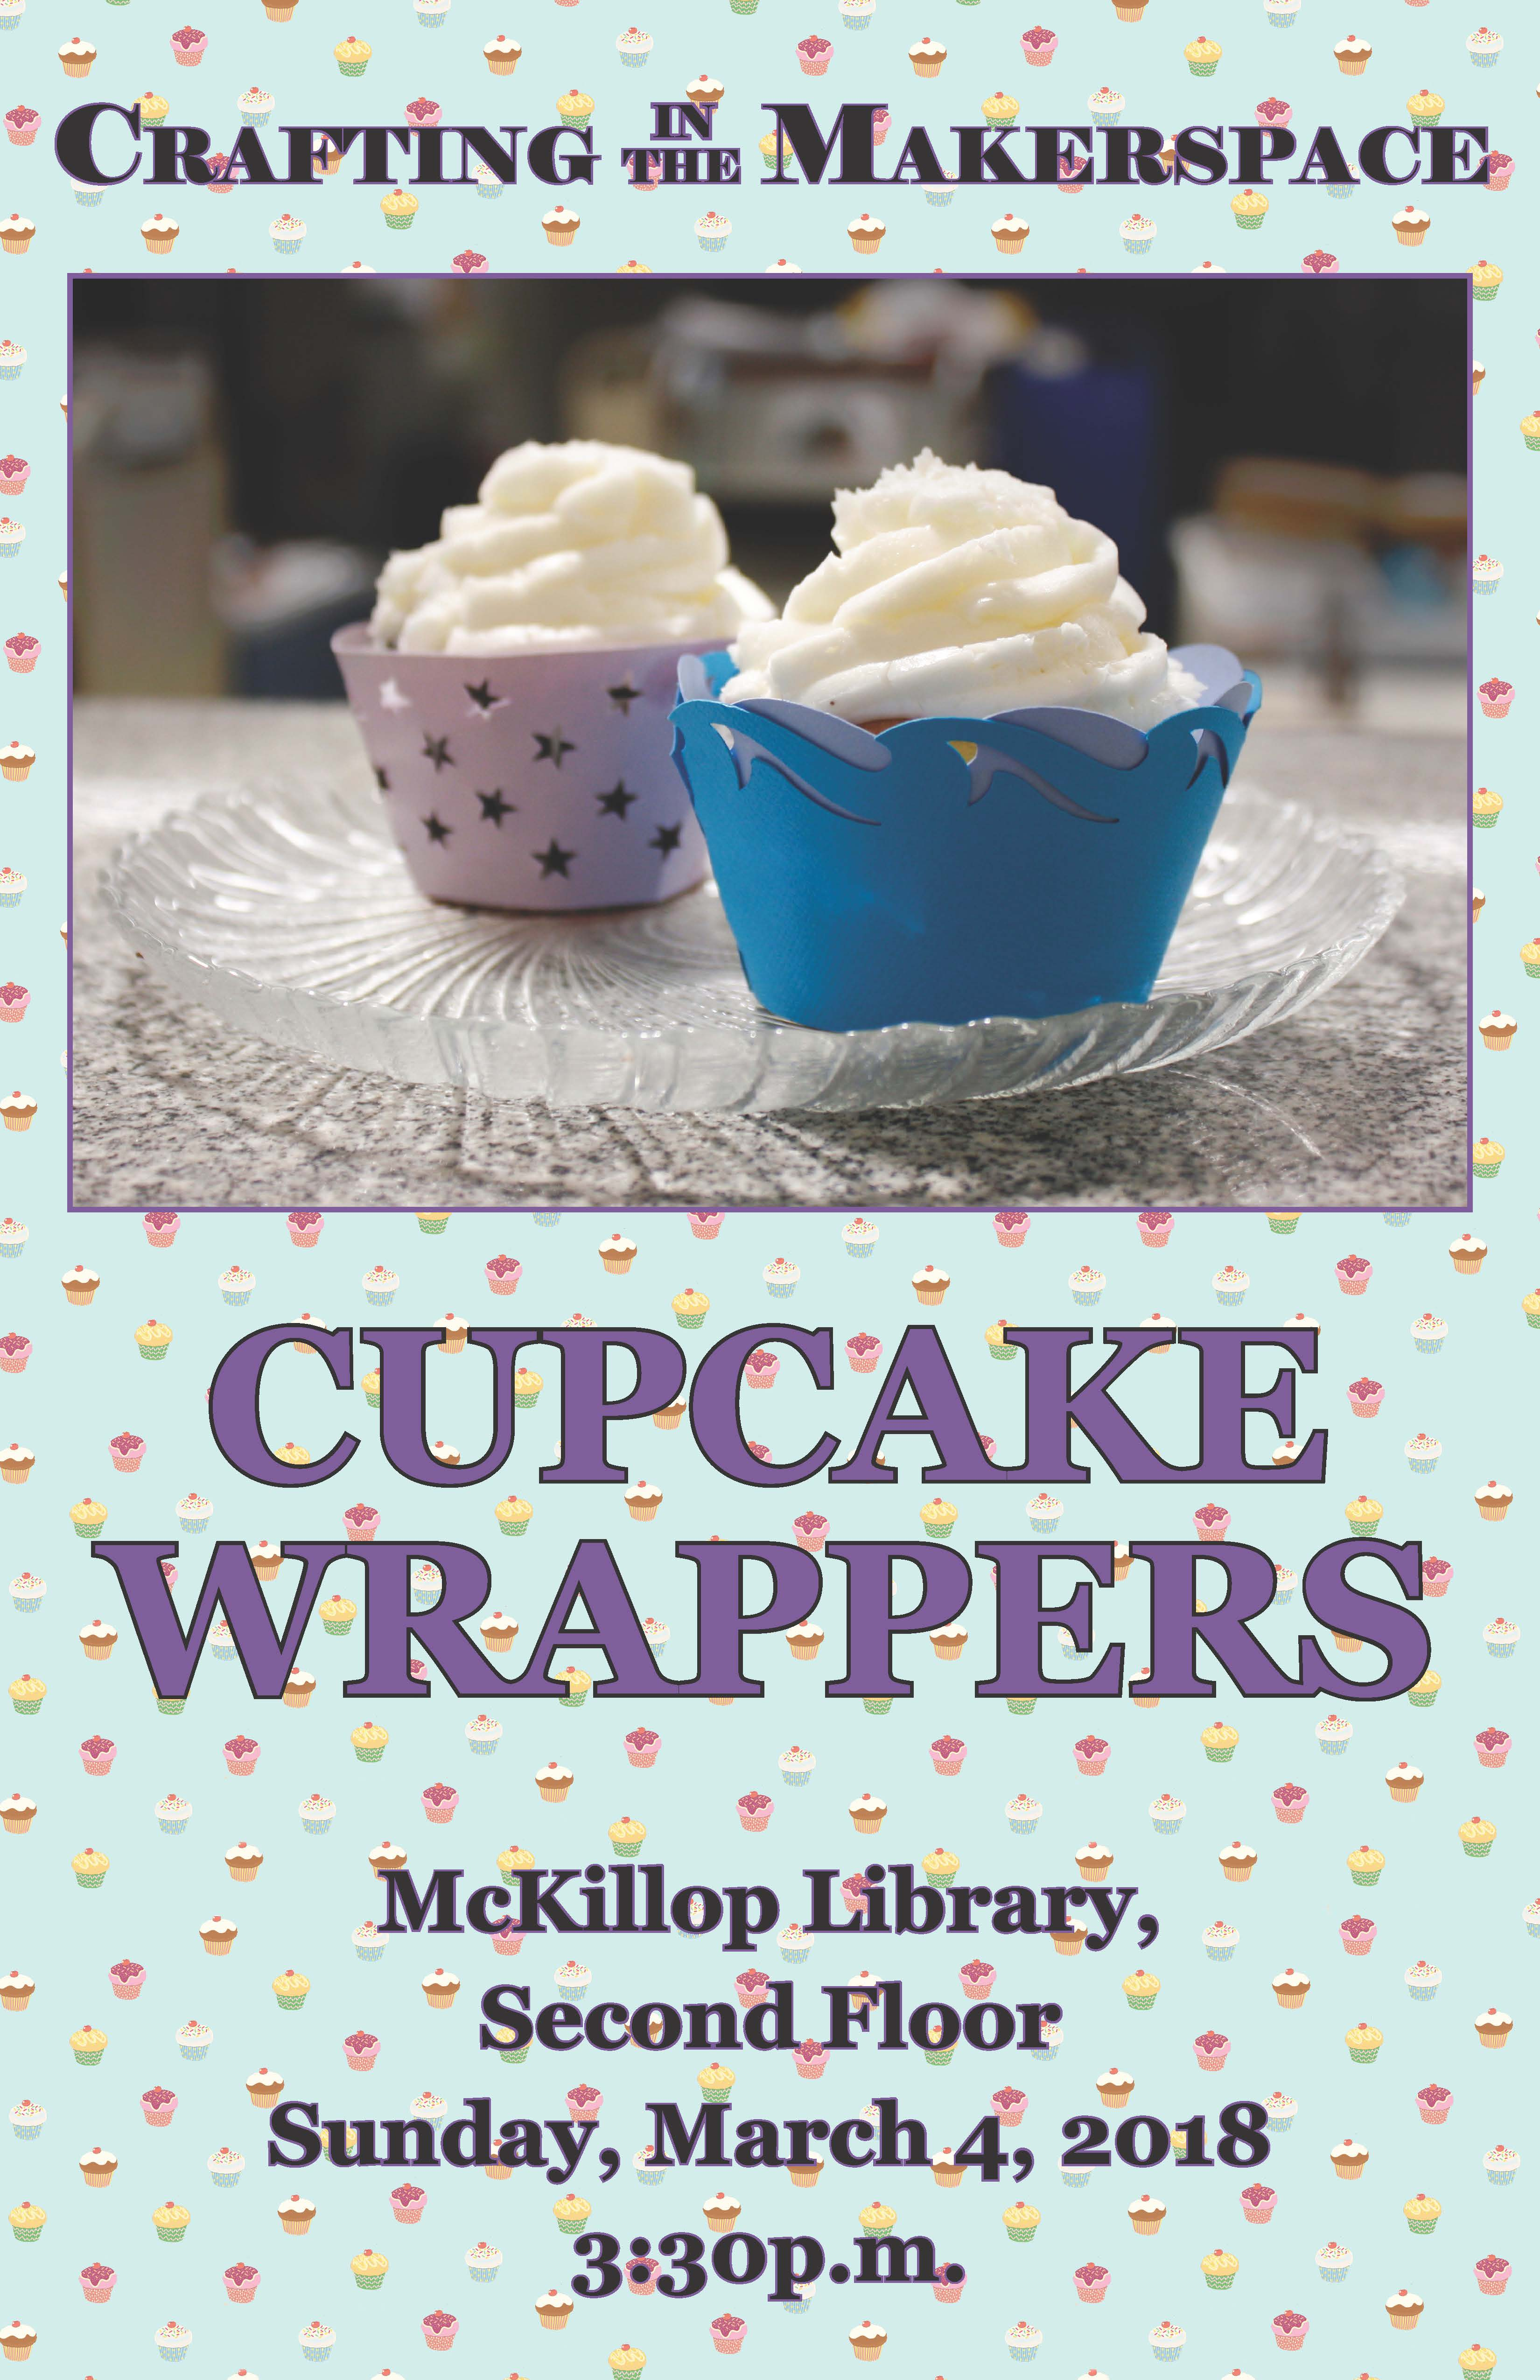 Crafting in the Makerspace: Cupcake Wrappers